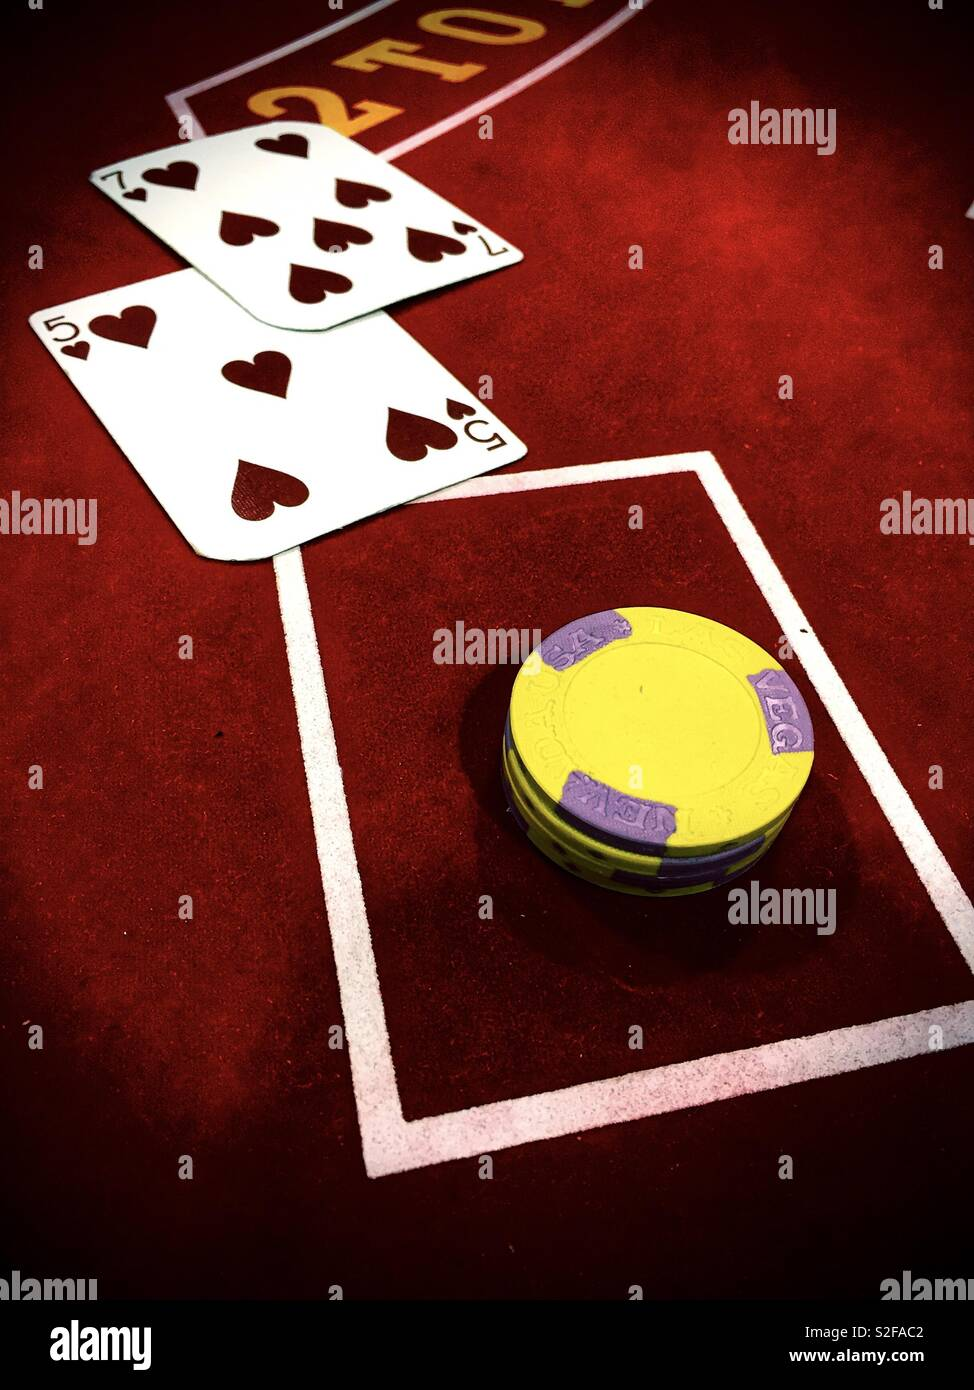 Betting chips and playground bag cards and a blackjack tables - Stock Image